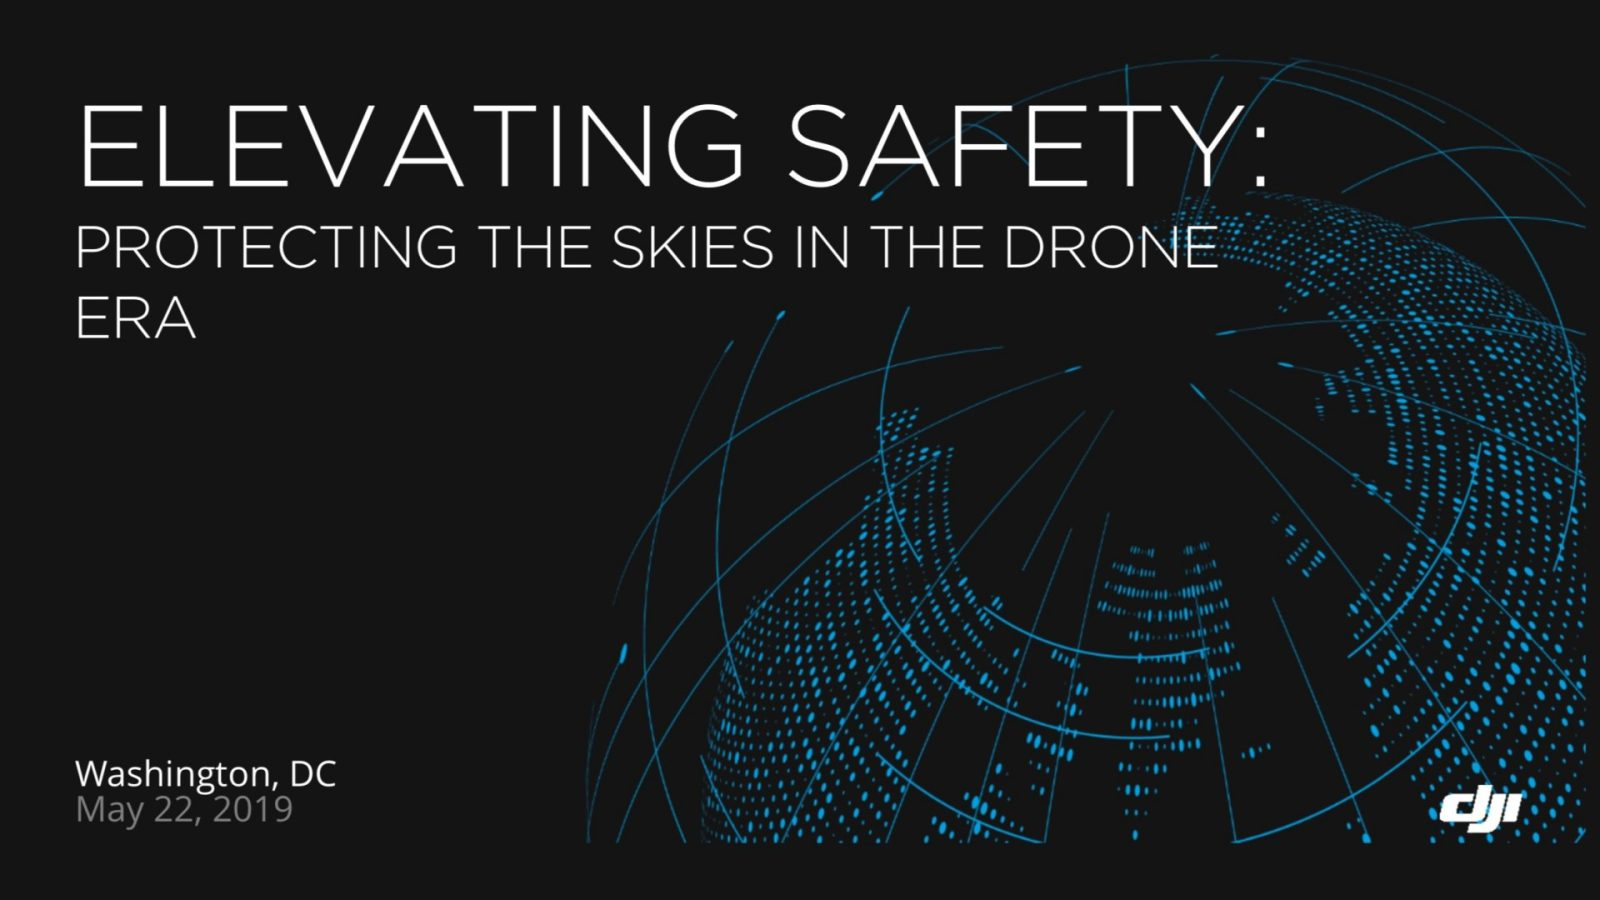 951b5d3c963 DJI's presentation – Elevating Safety: Protecting the skies in the drone era